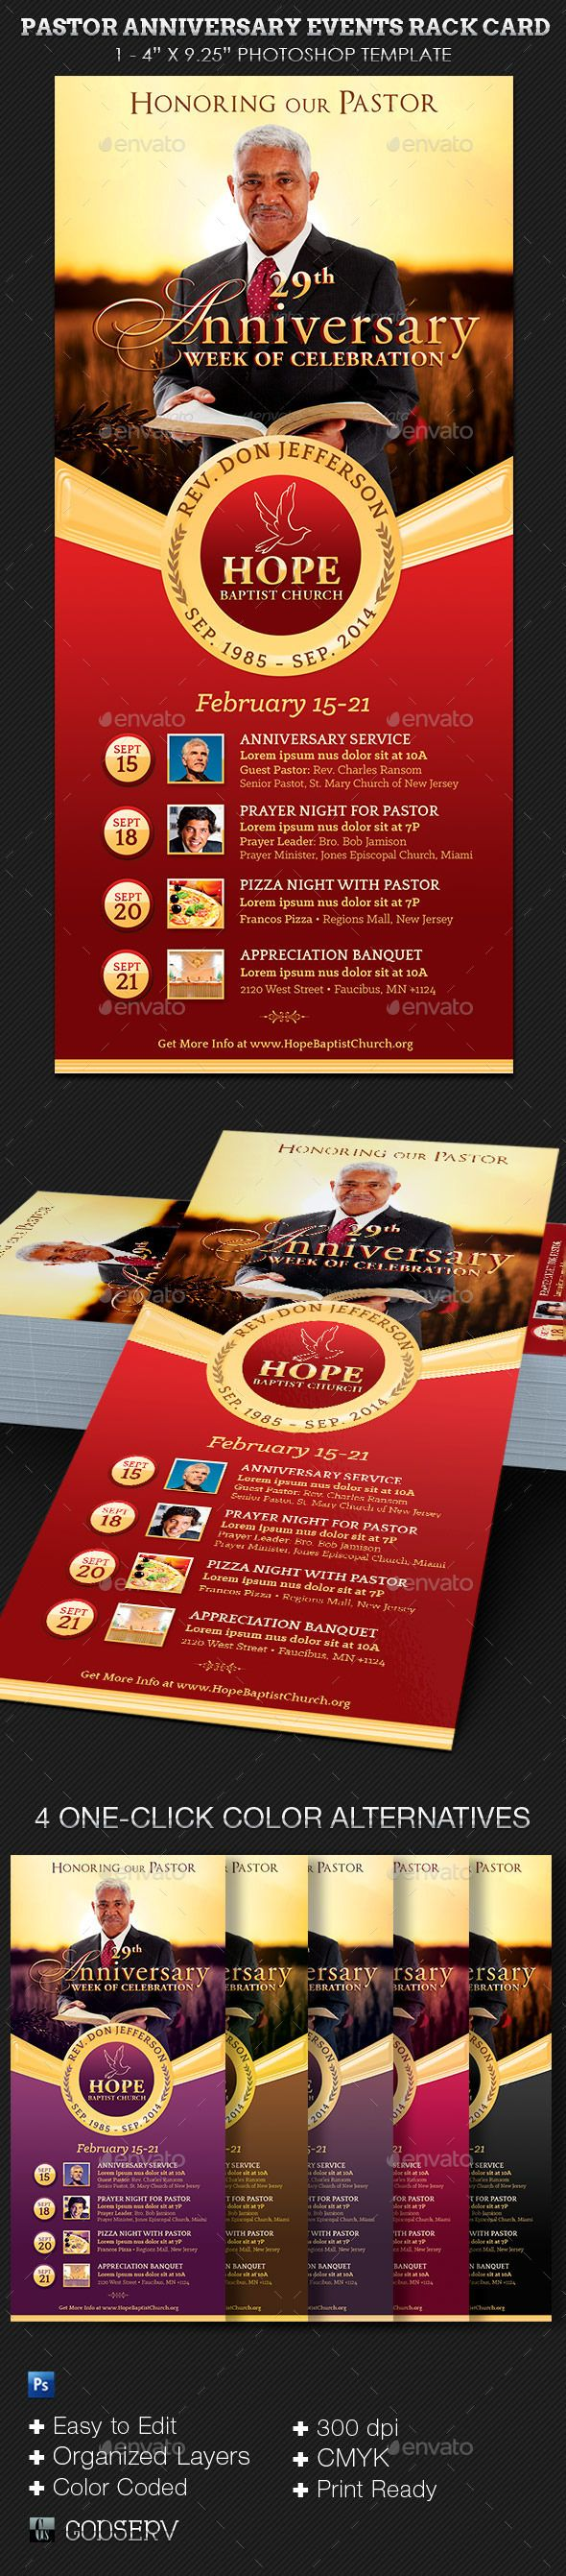 church anniversary flyer poster template church flyers and pastor anniversary events rack card template